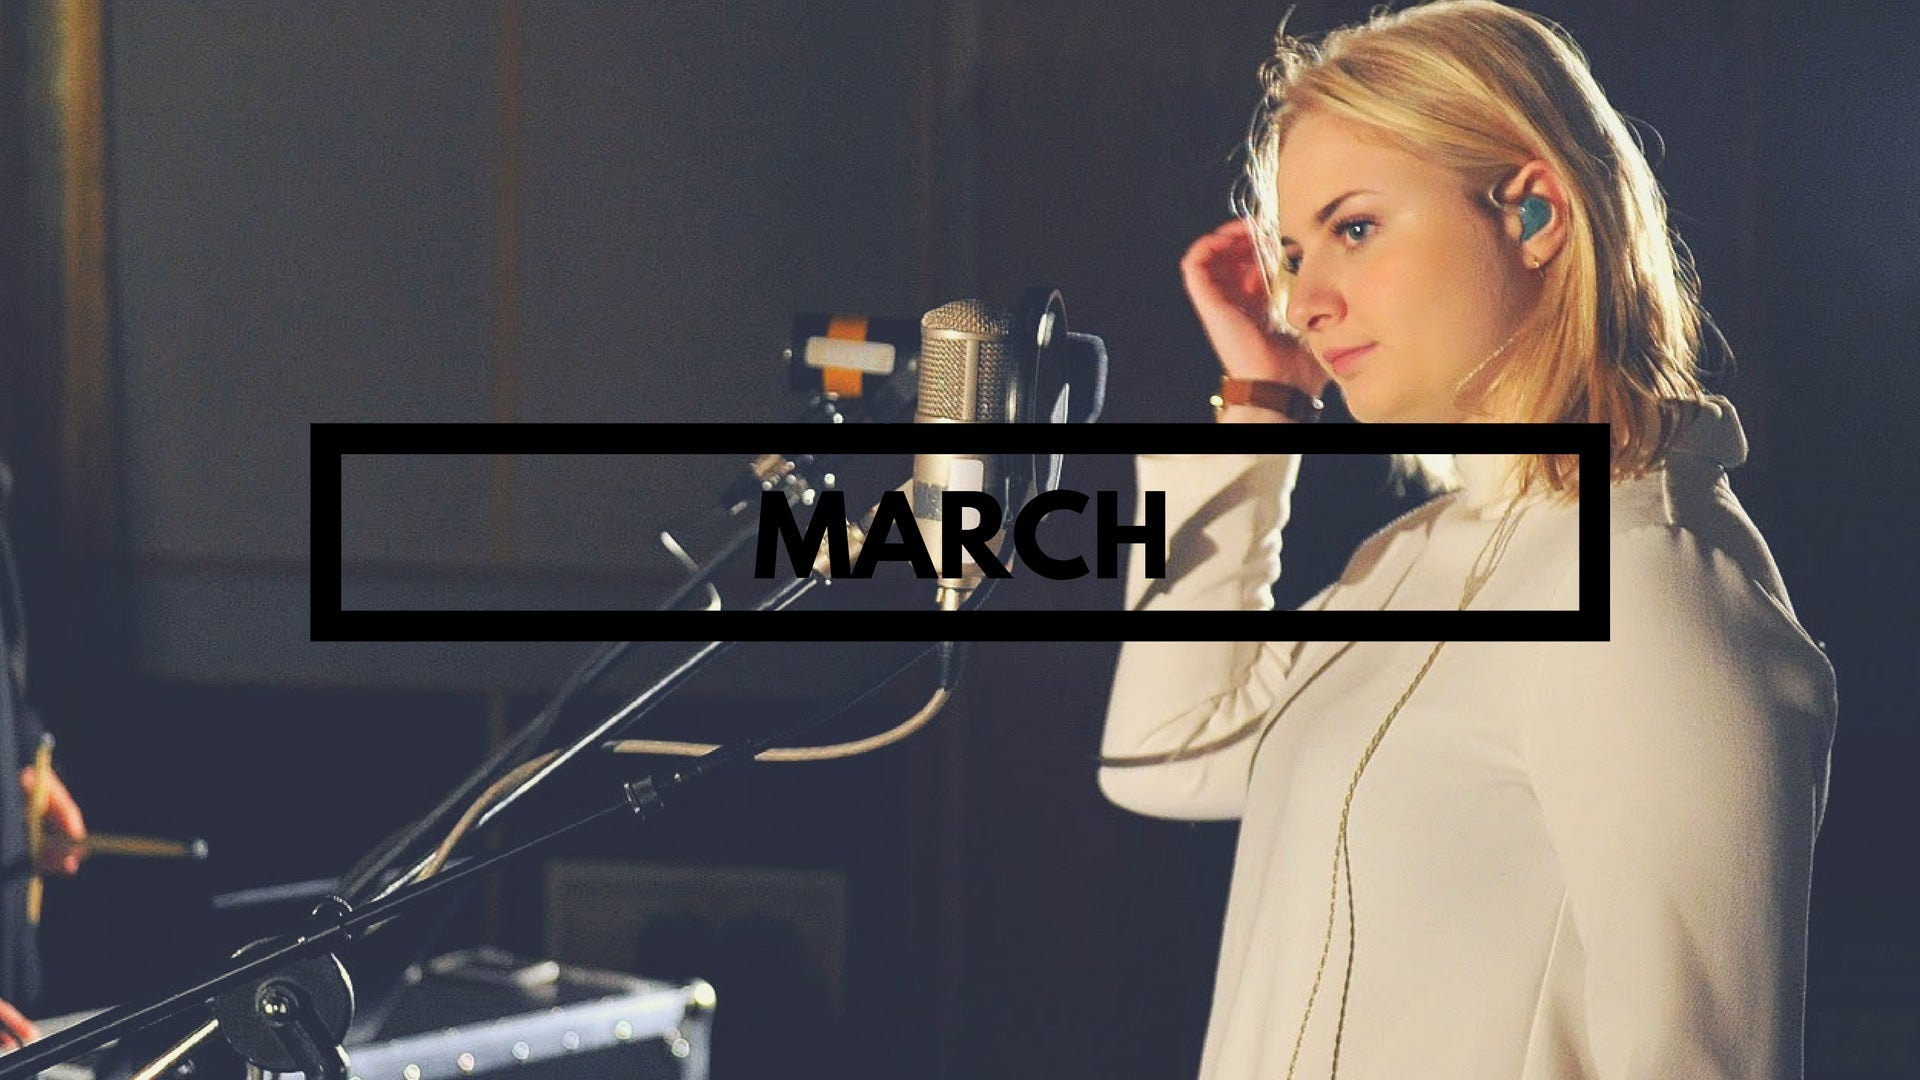 March Breakthrough Record: Long Way Home by Låpsley